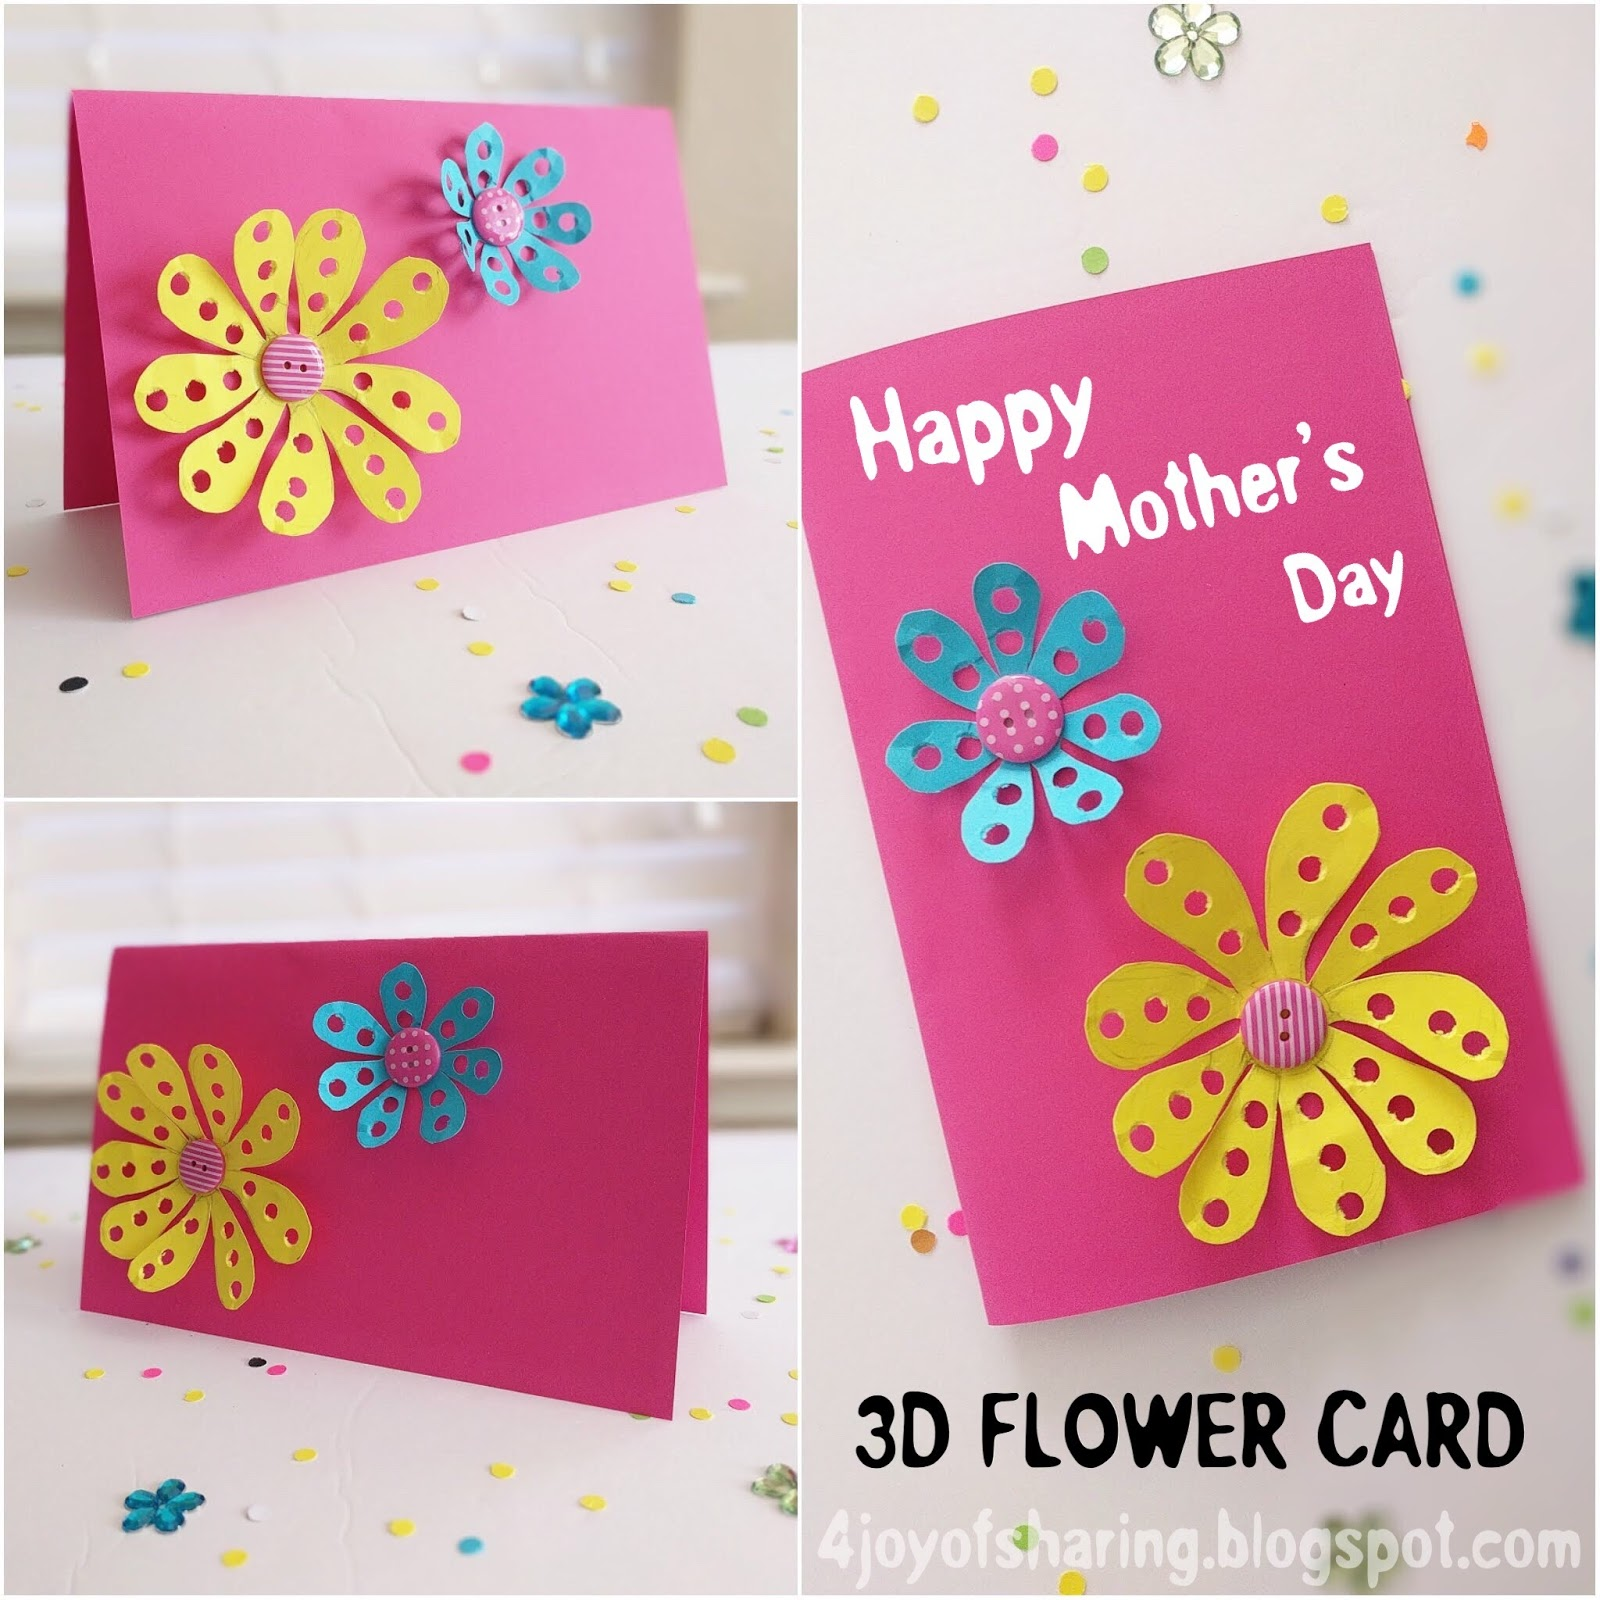 The bond between a mother and child is a special one. Diy Mother S Day 3d Flower Card The Joy Of Sharing